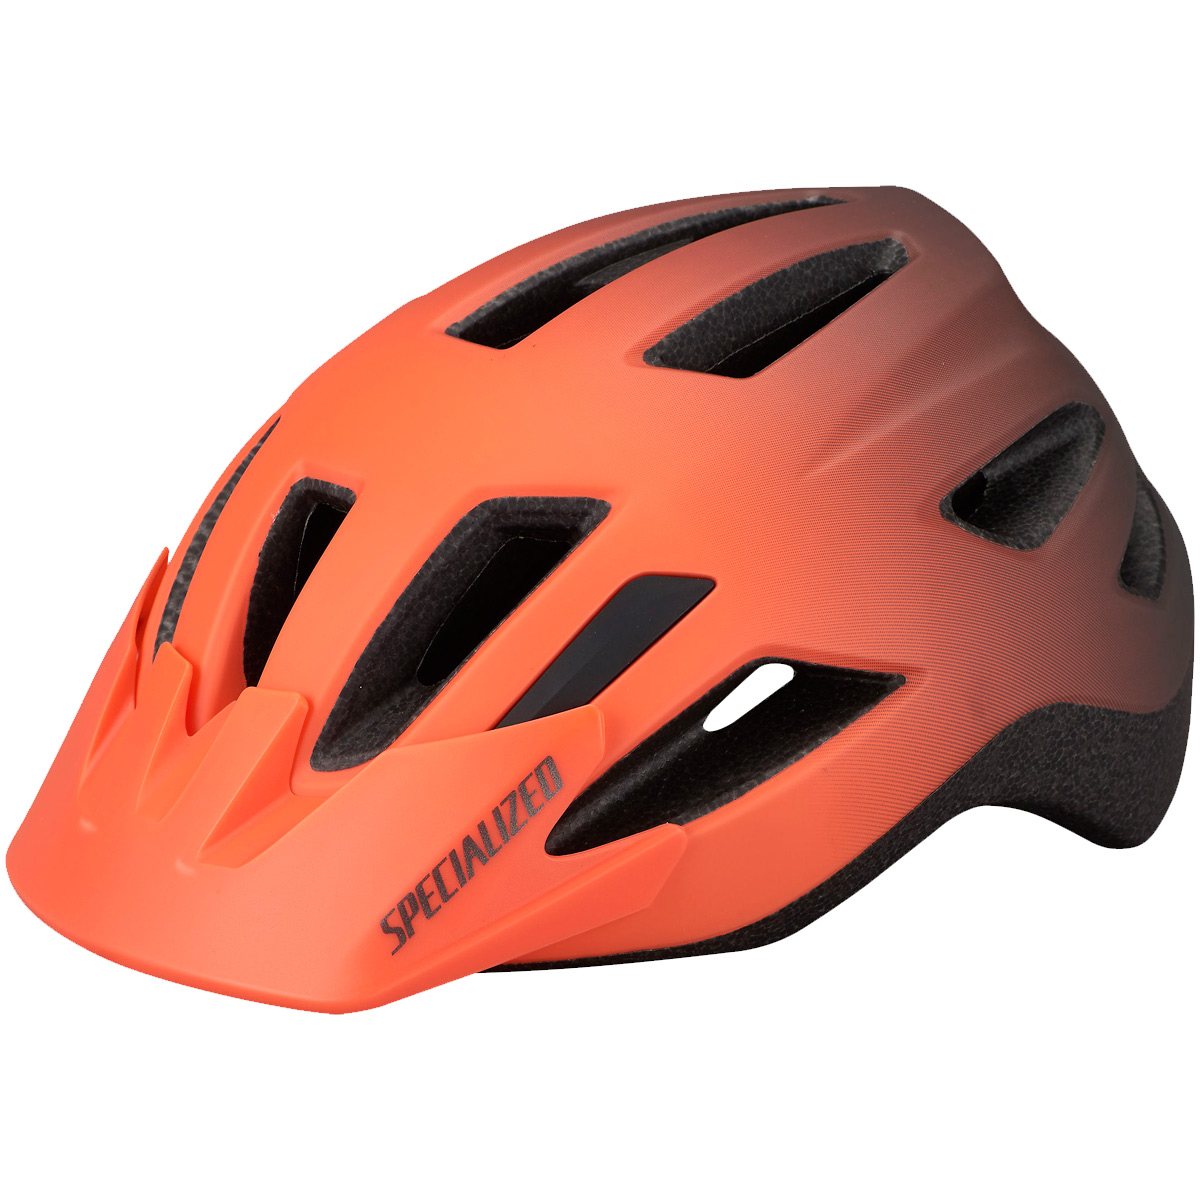 Capacete Specialized Shuffle Child Standard Buckle